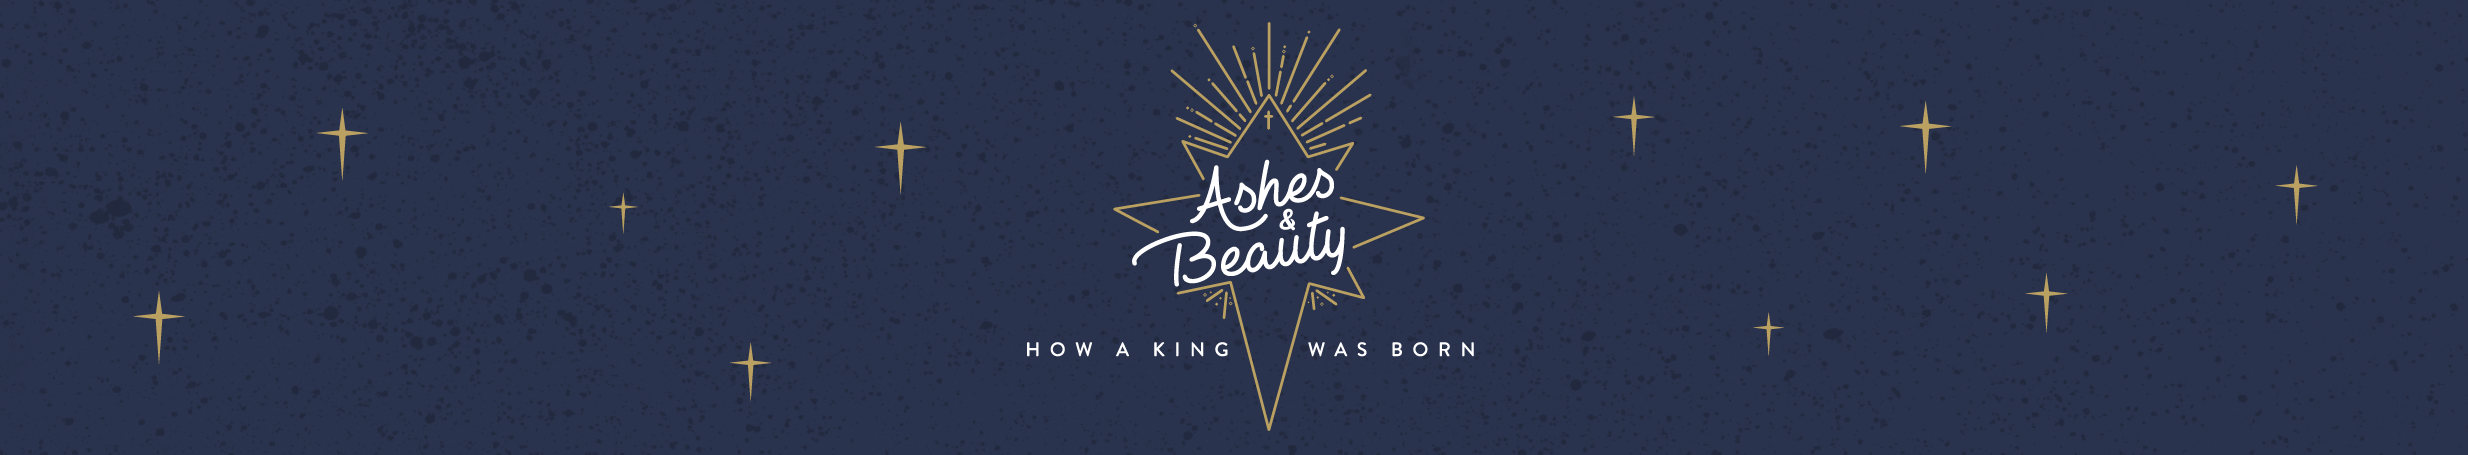 Ashes to Beauty Banner-03.png